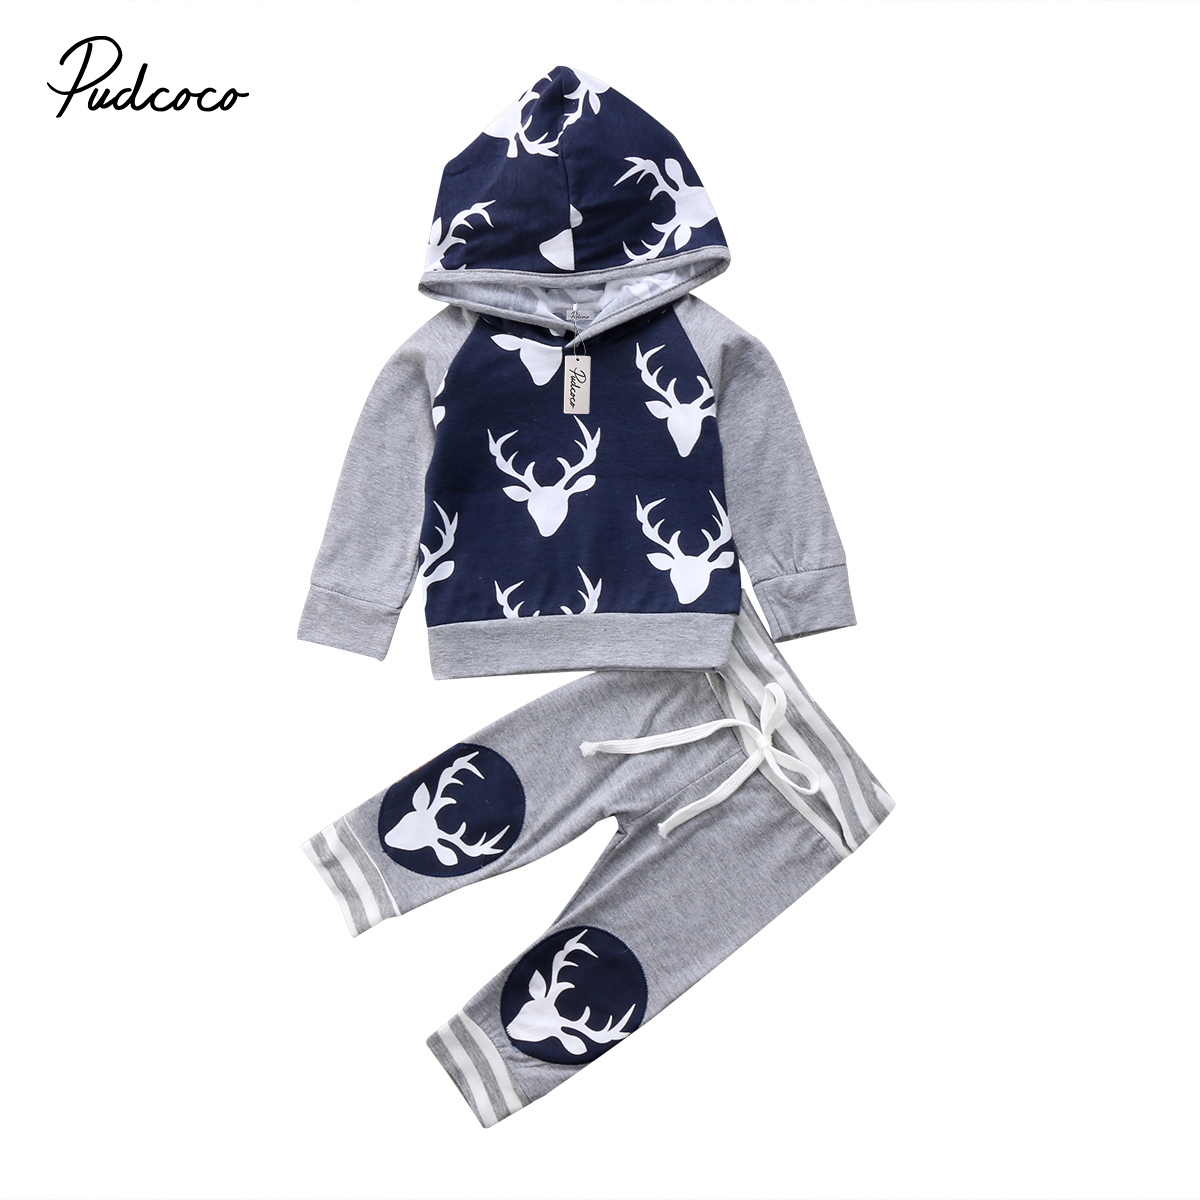 Pudcoco Newborn Baby Suit Kids Boys Cartoon Hooded Tops Infant Boy Pullover Sweatshirts Striped Leggings Adorable Outfits Set